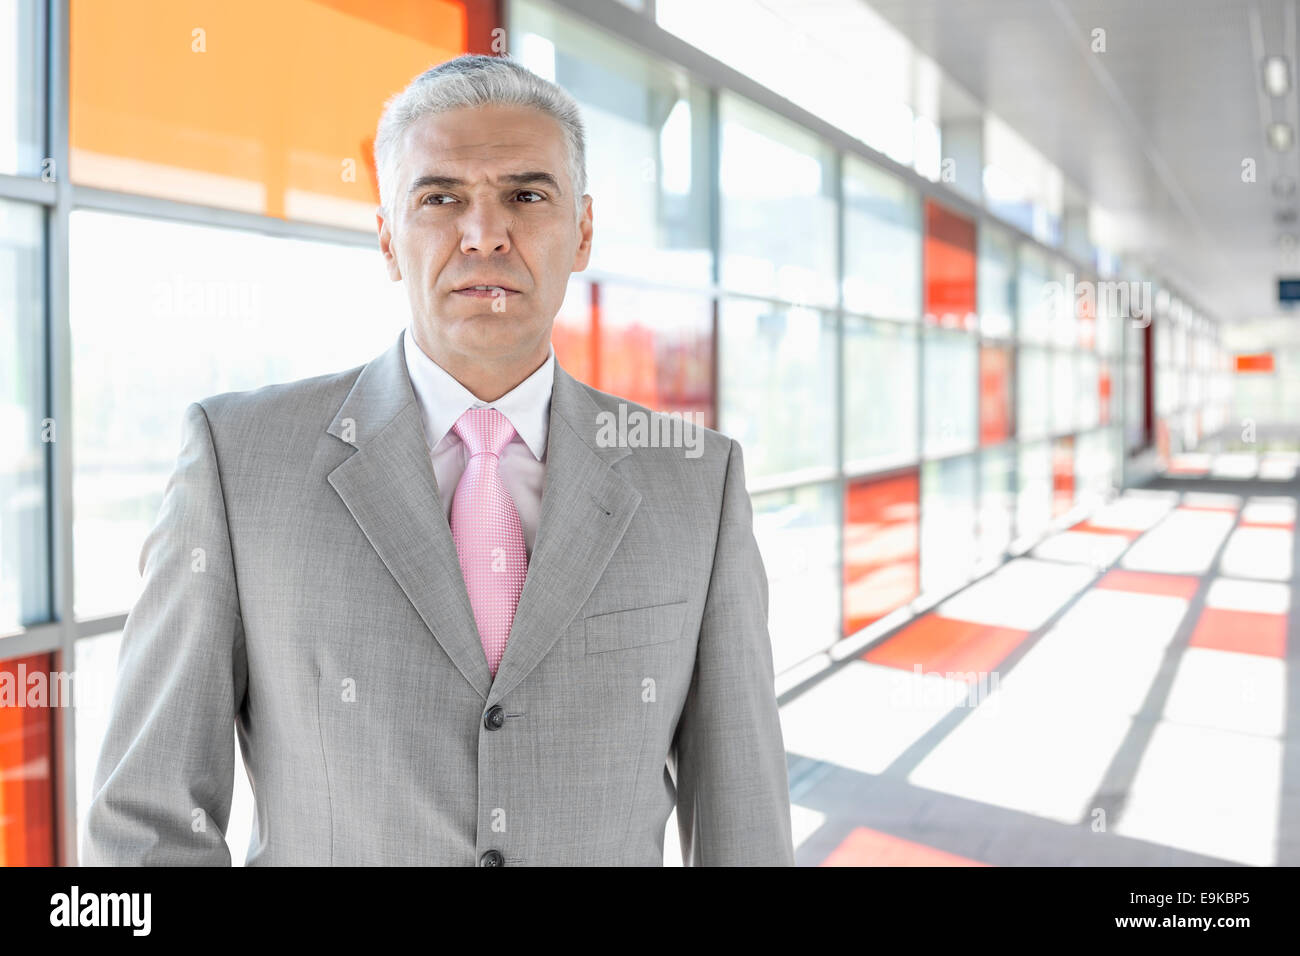 Middle aged businessman at railroad station - Stock Image